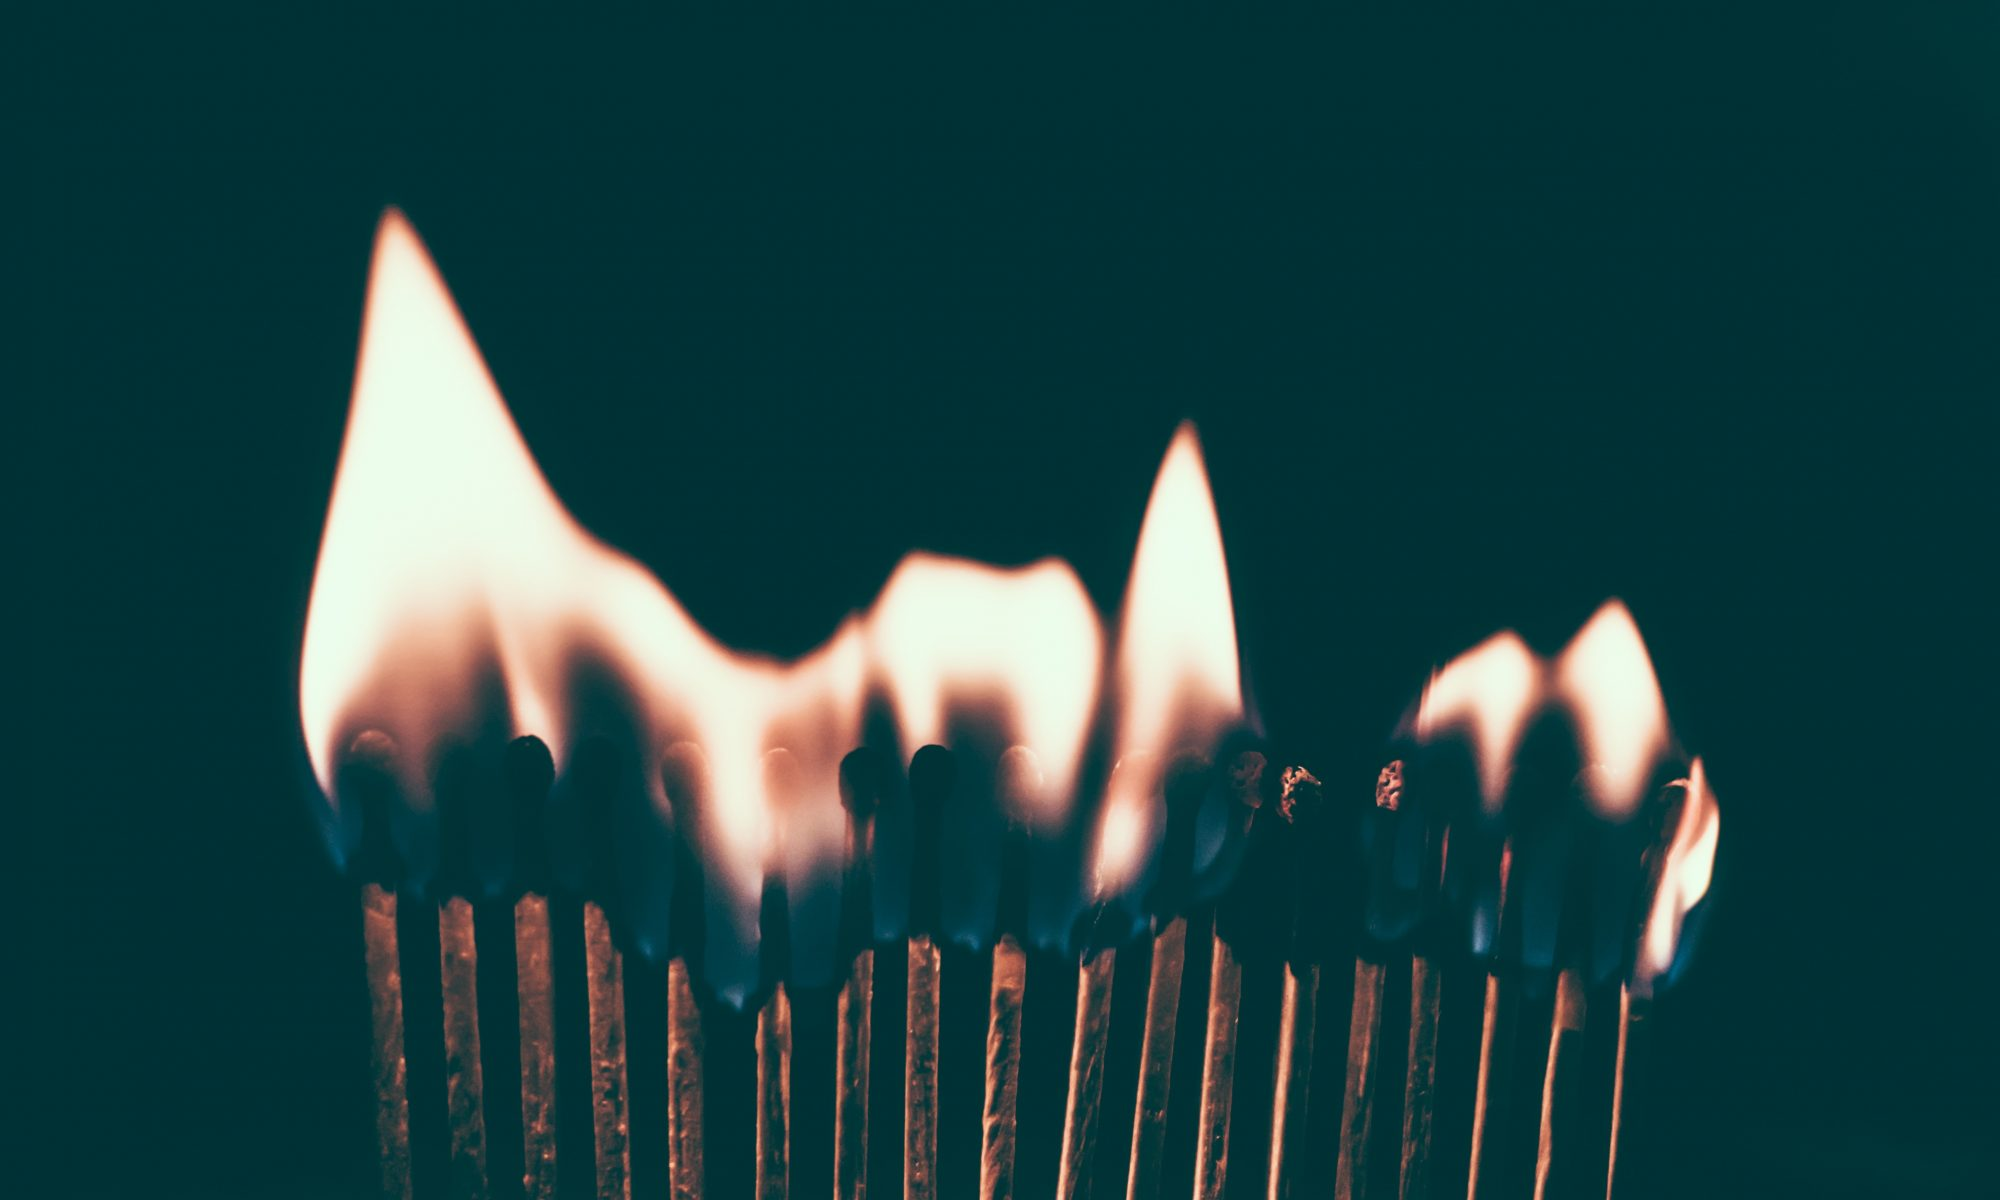 Matches by Jamie Street via Unsplash